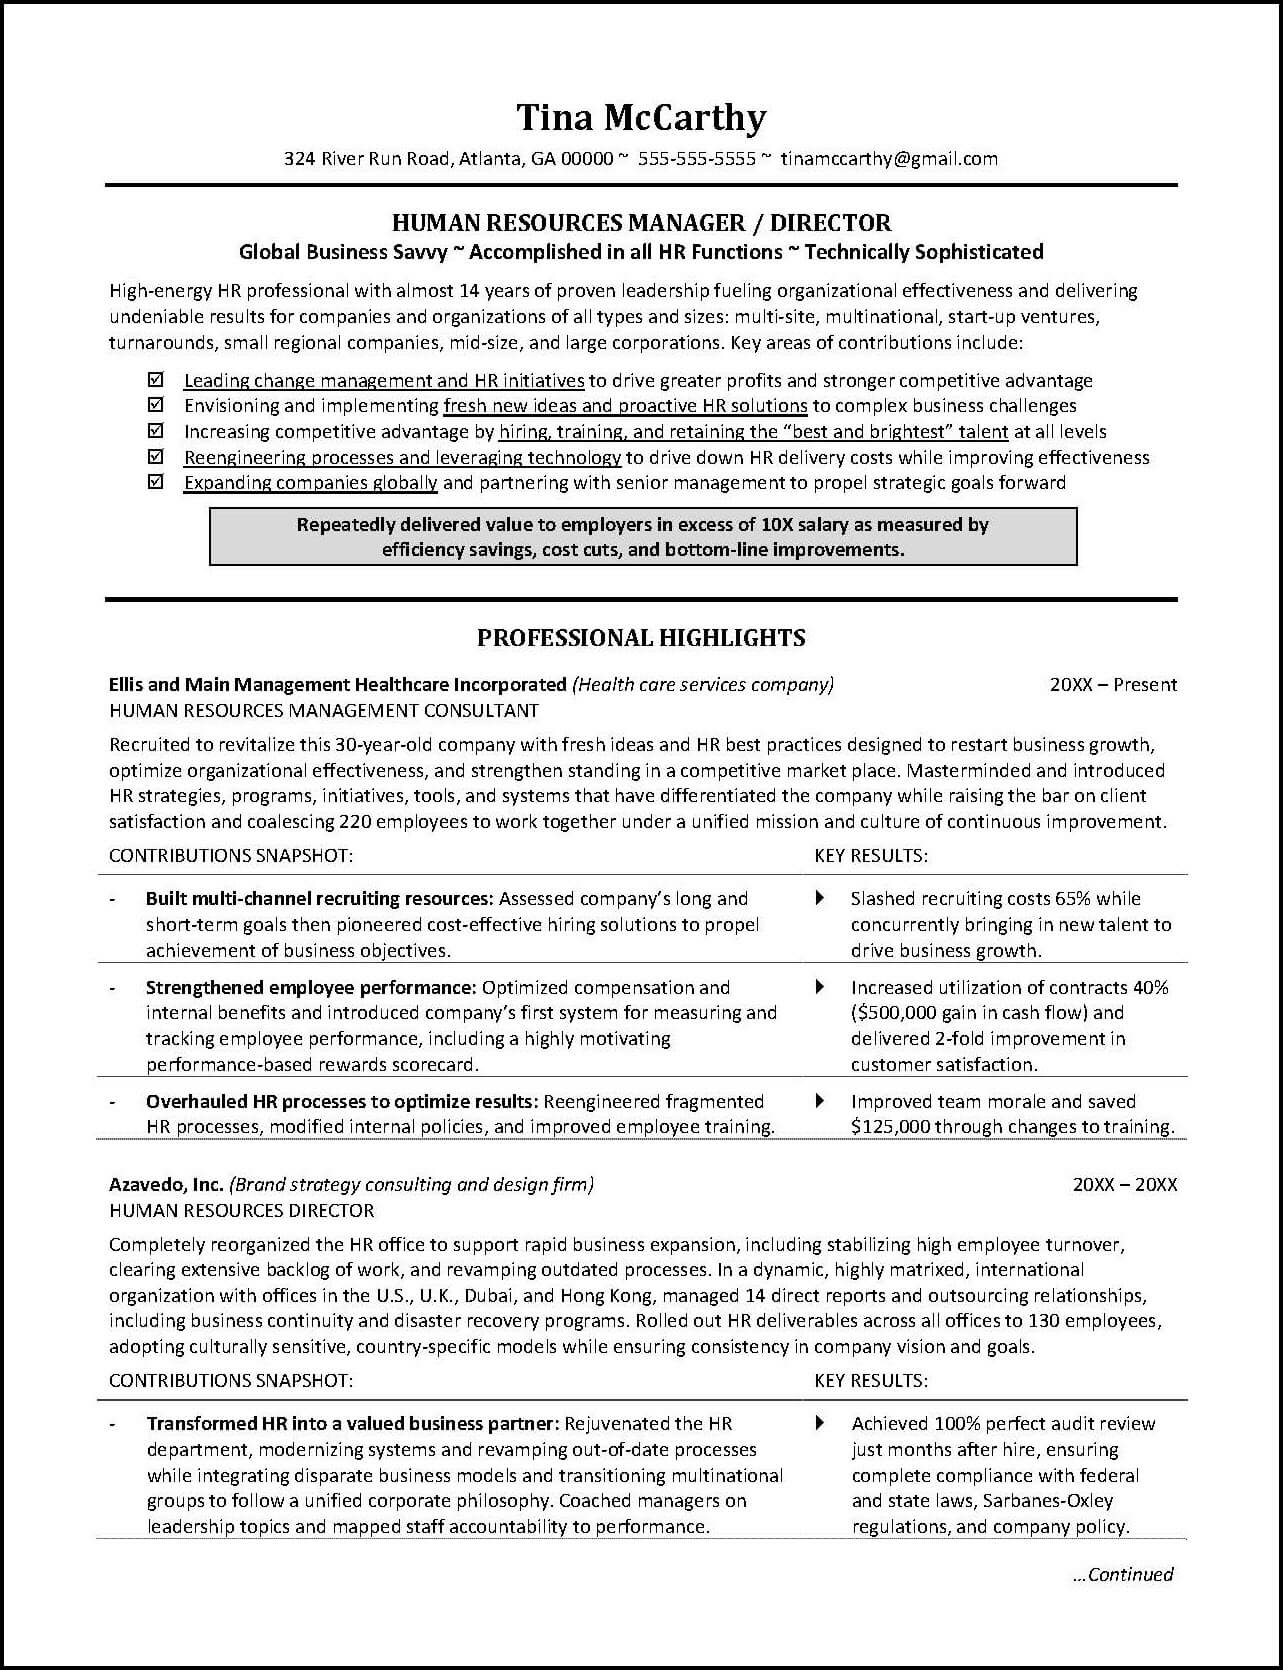 This Sample Human Resources Resume Is Just An Example To Show The Quality  And Style Of Our Professional Resume Writing Services.  Human Resources Resume Samples